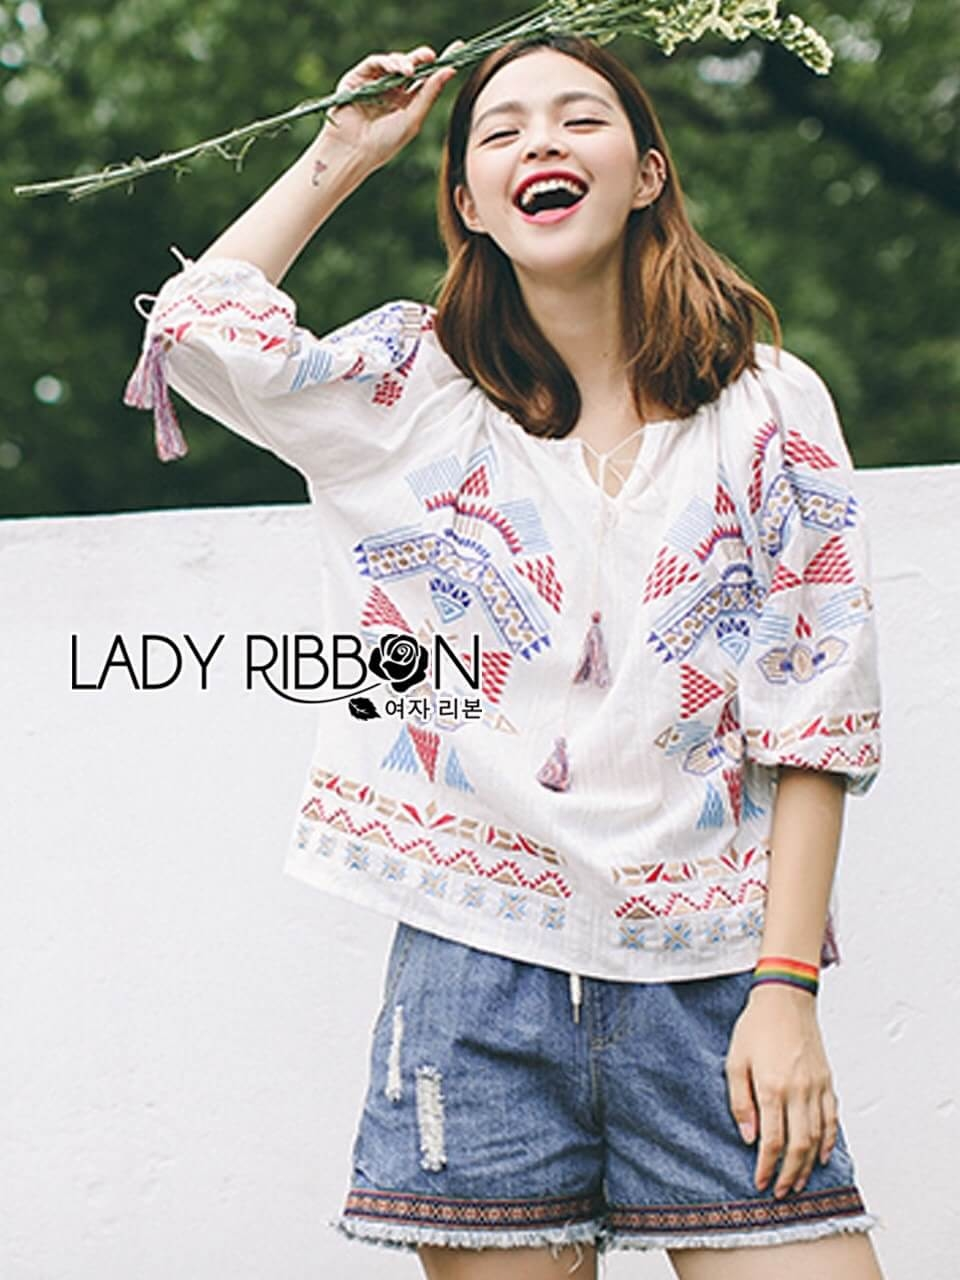 &#x1F380 Lady Ribbon's Made &#x1F380 Lady Iris Local Embroidered Cotton with Tassel